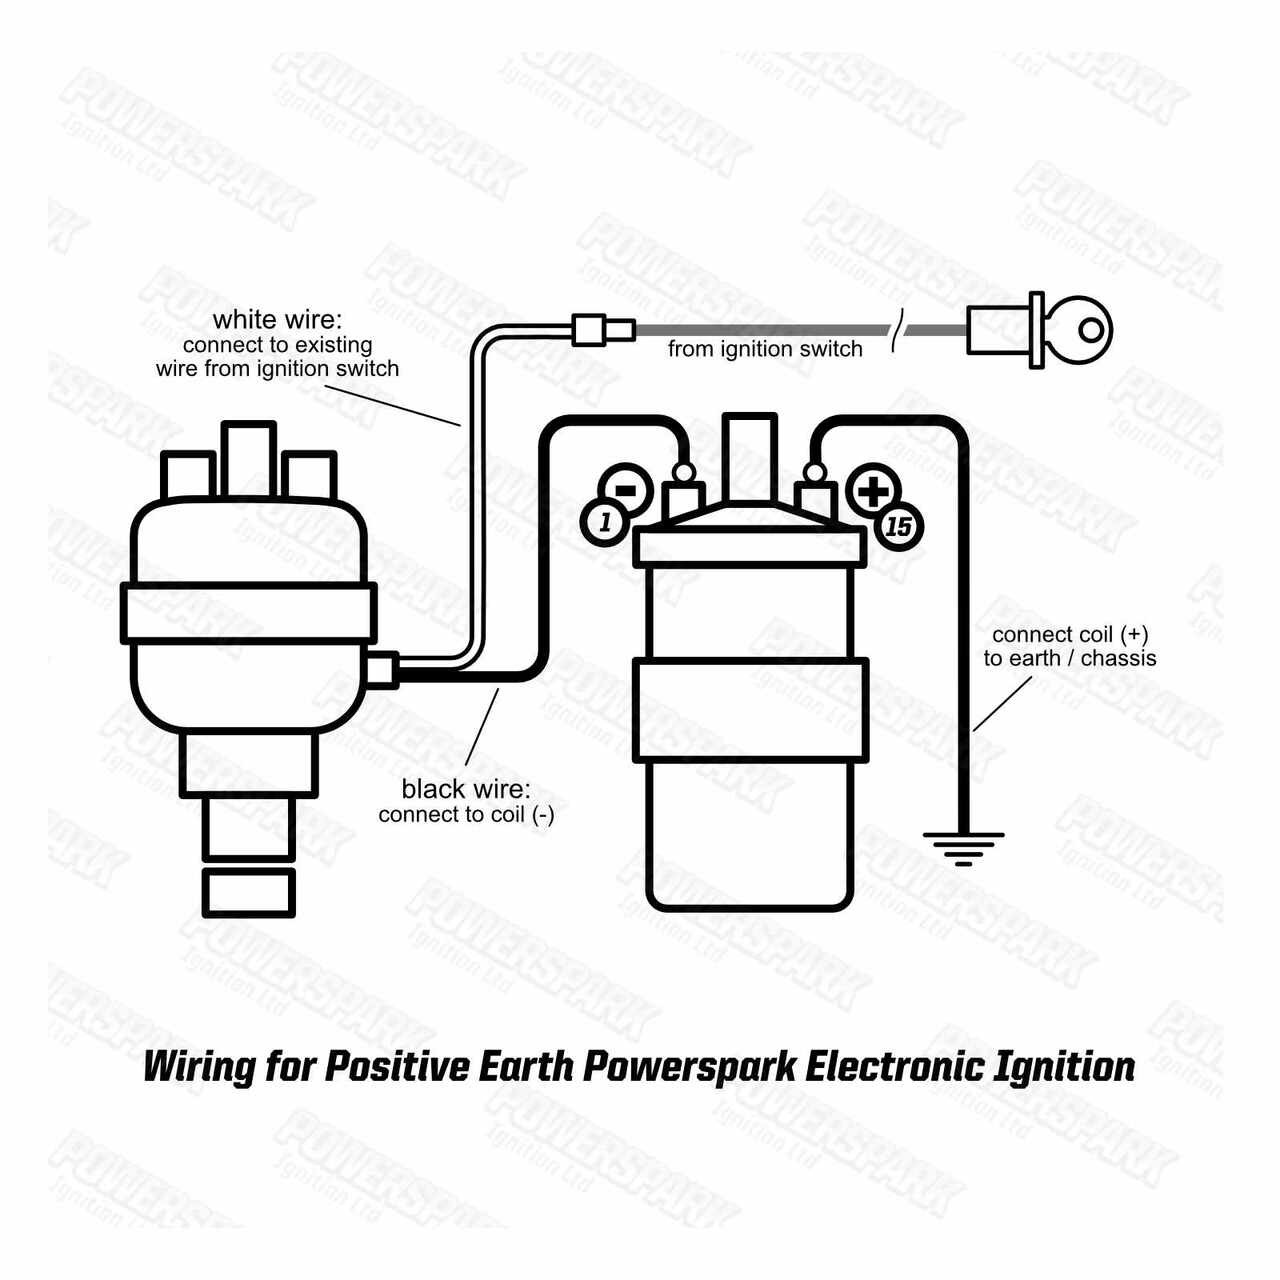 Powerspark Powerspark Electronic Ignition Kit for Lucas 25D and DM2 Distributor Positive Earth K2PP and R1